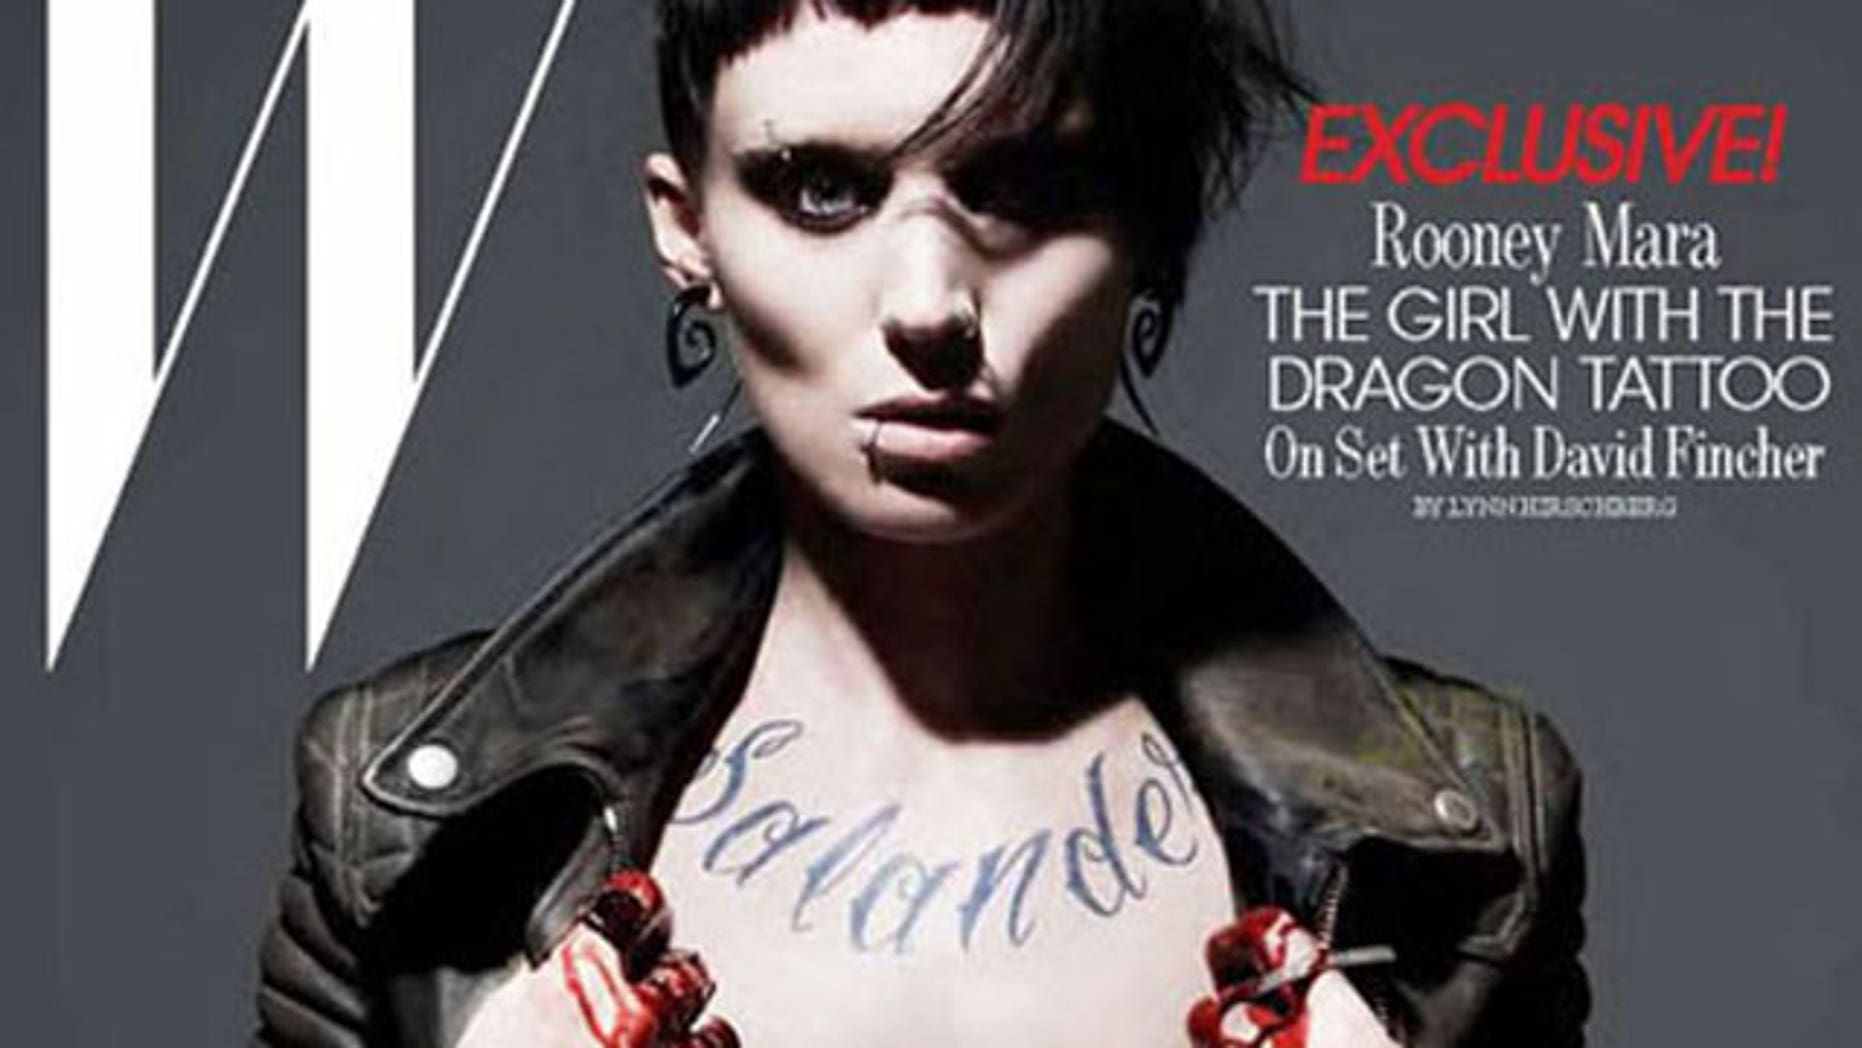 Rooney Mara as Lisbeth Salander. The actress will portray the character in the David Fincher film adaptation.